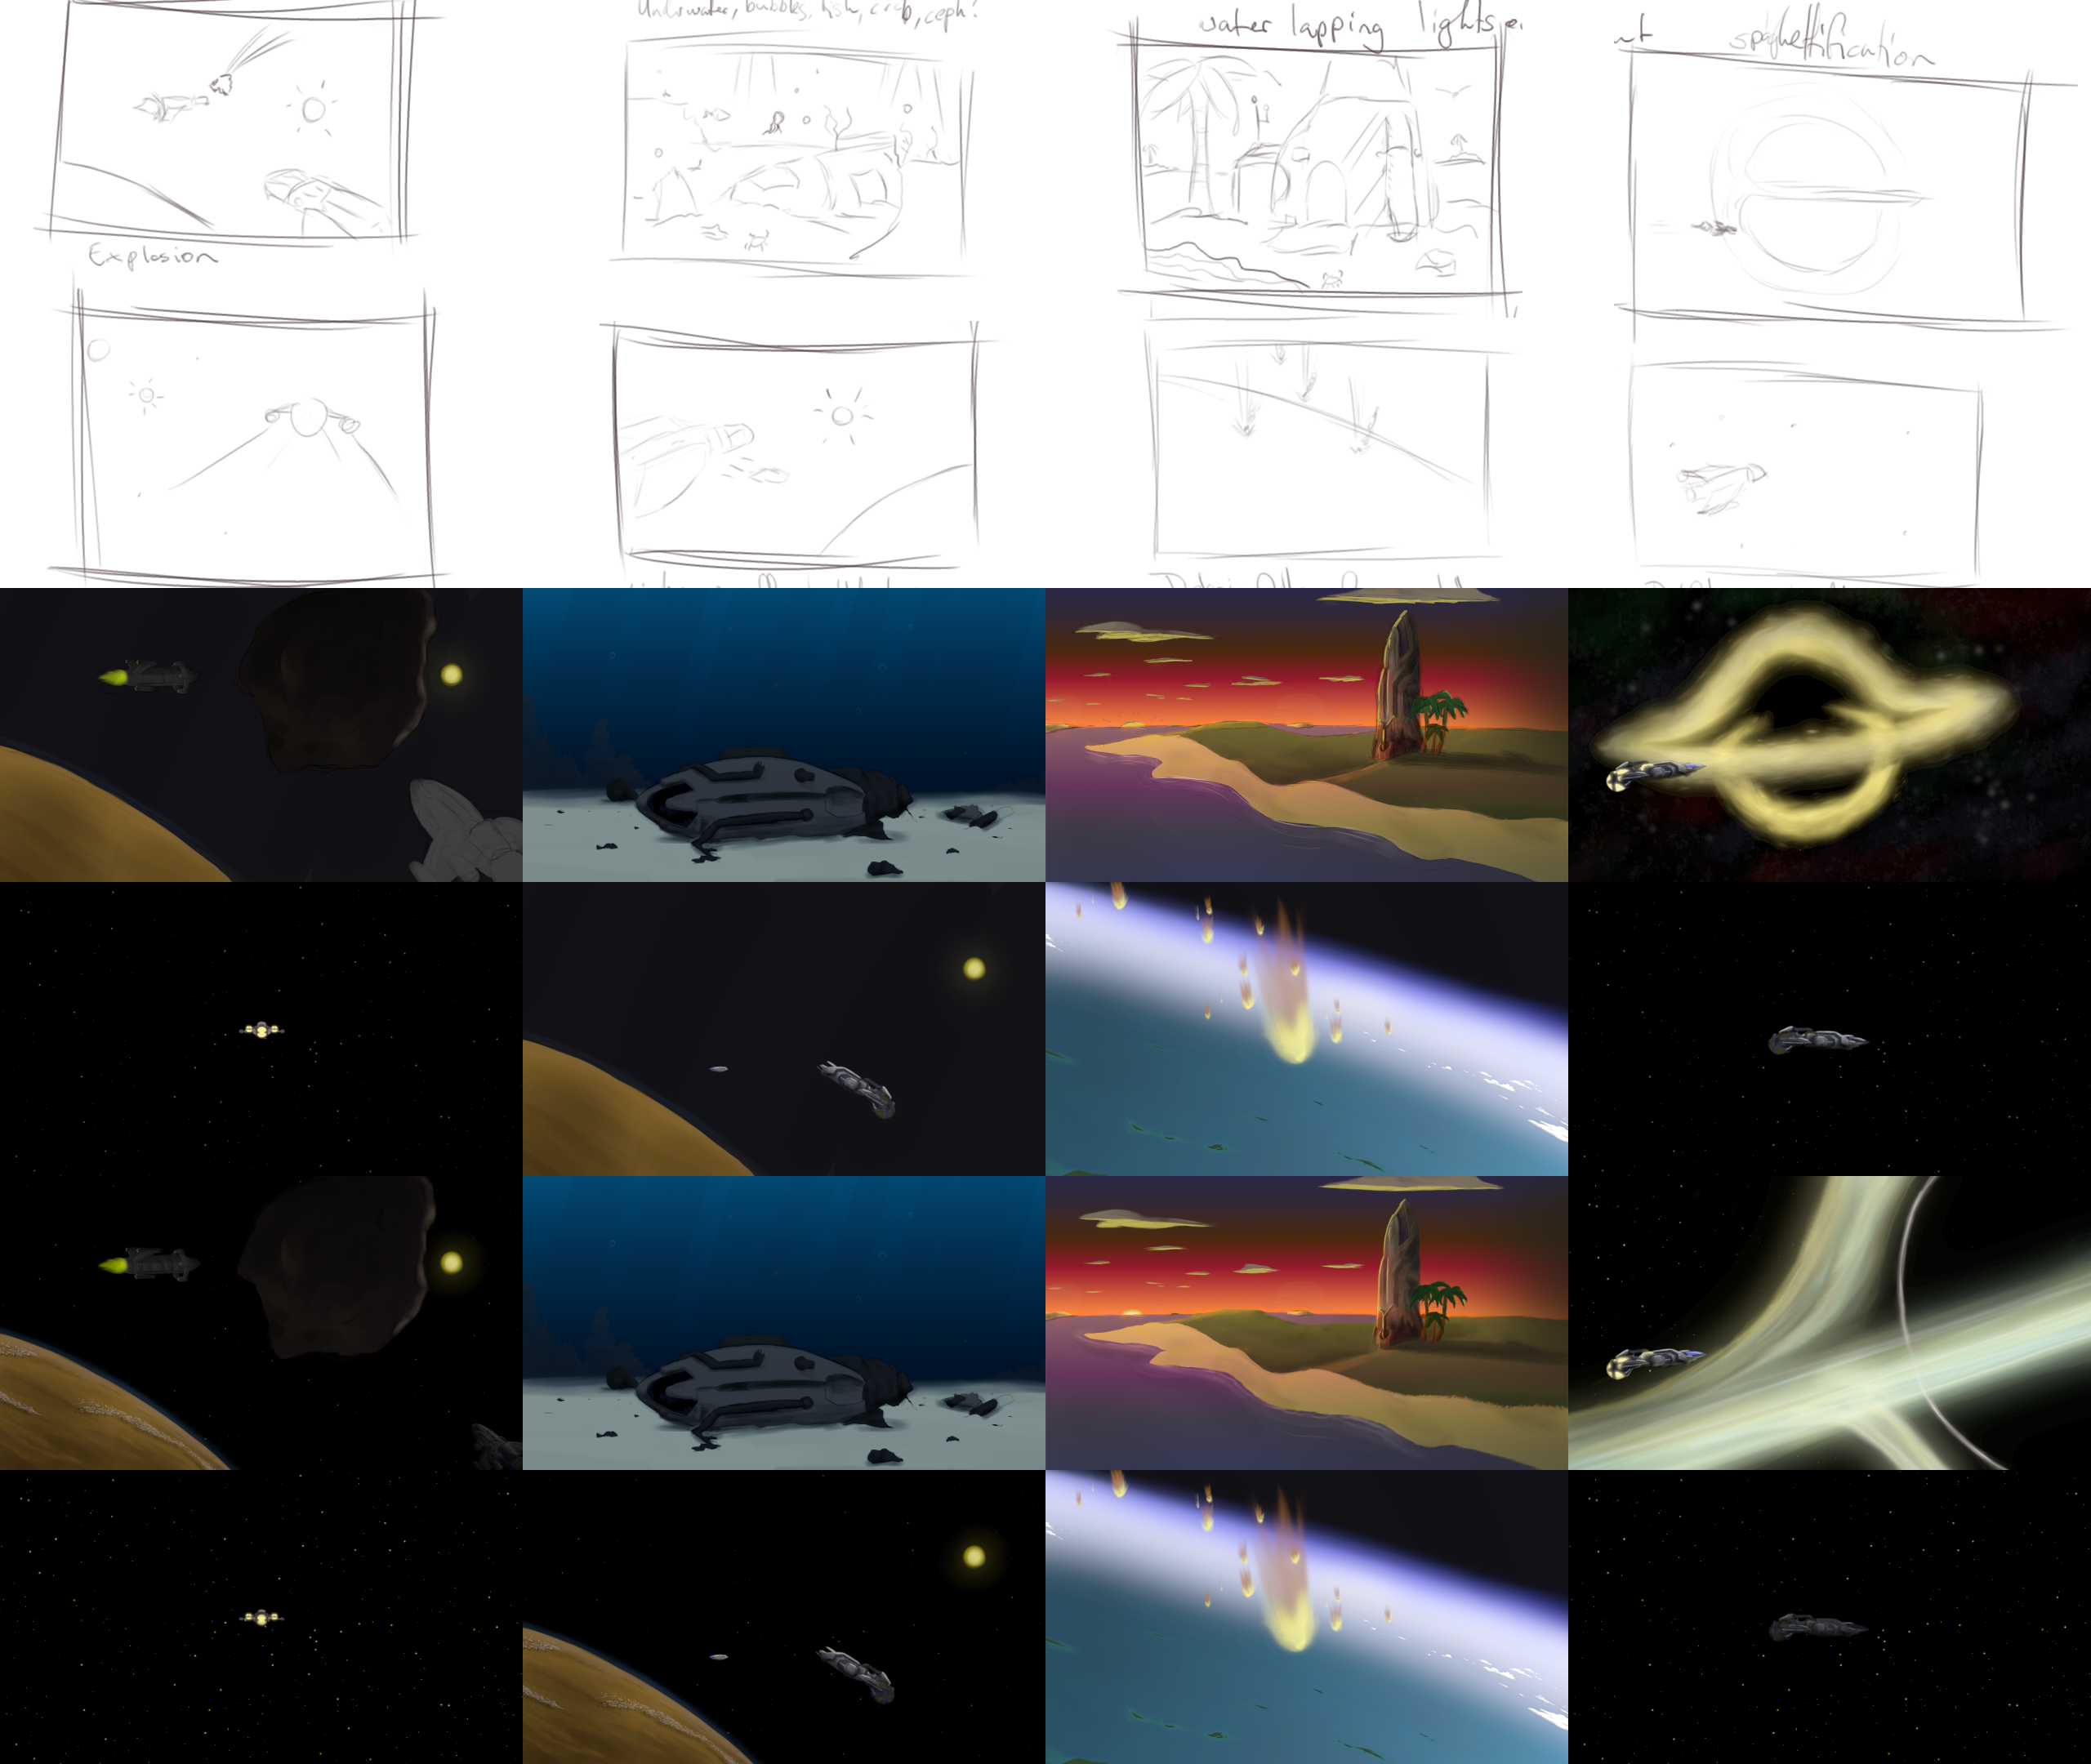 The progression of 8 end screens from sketch to final image